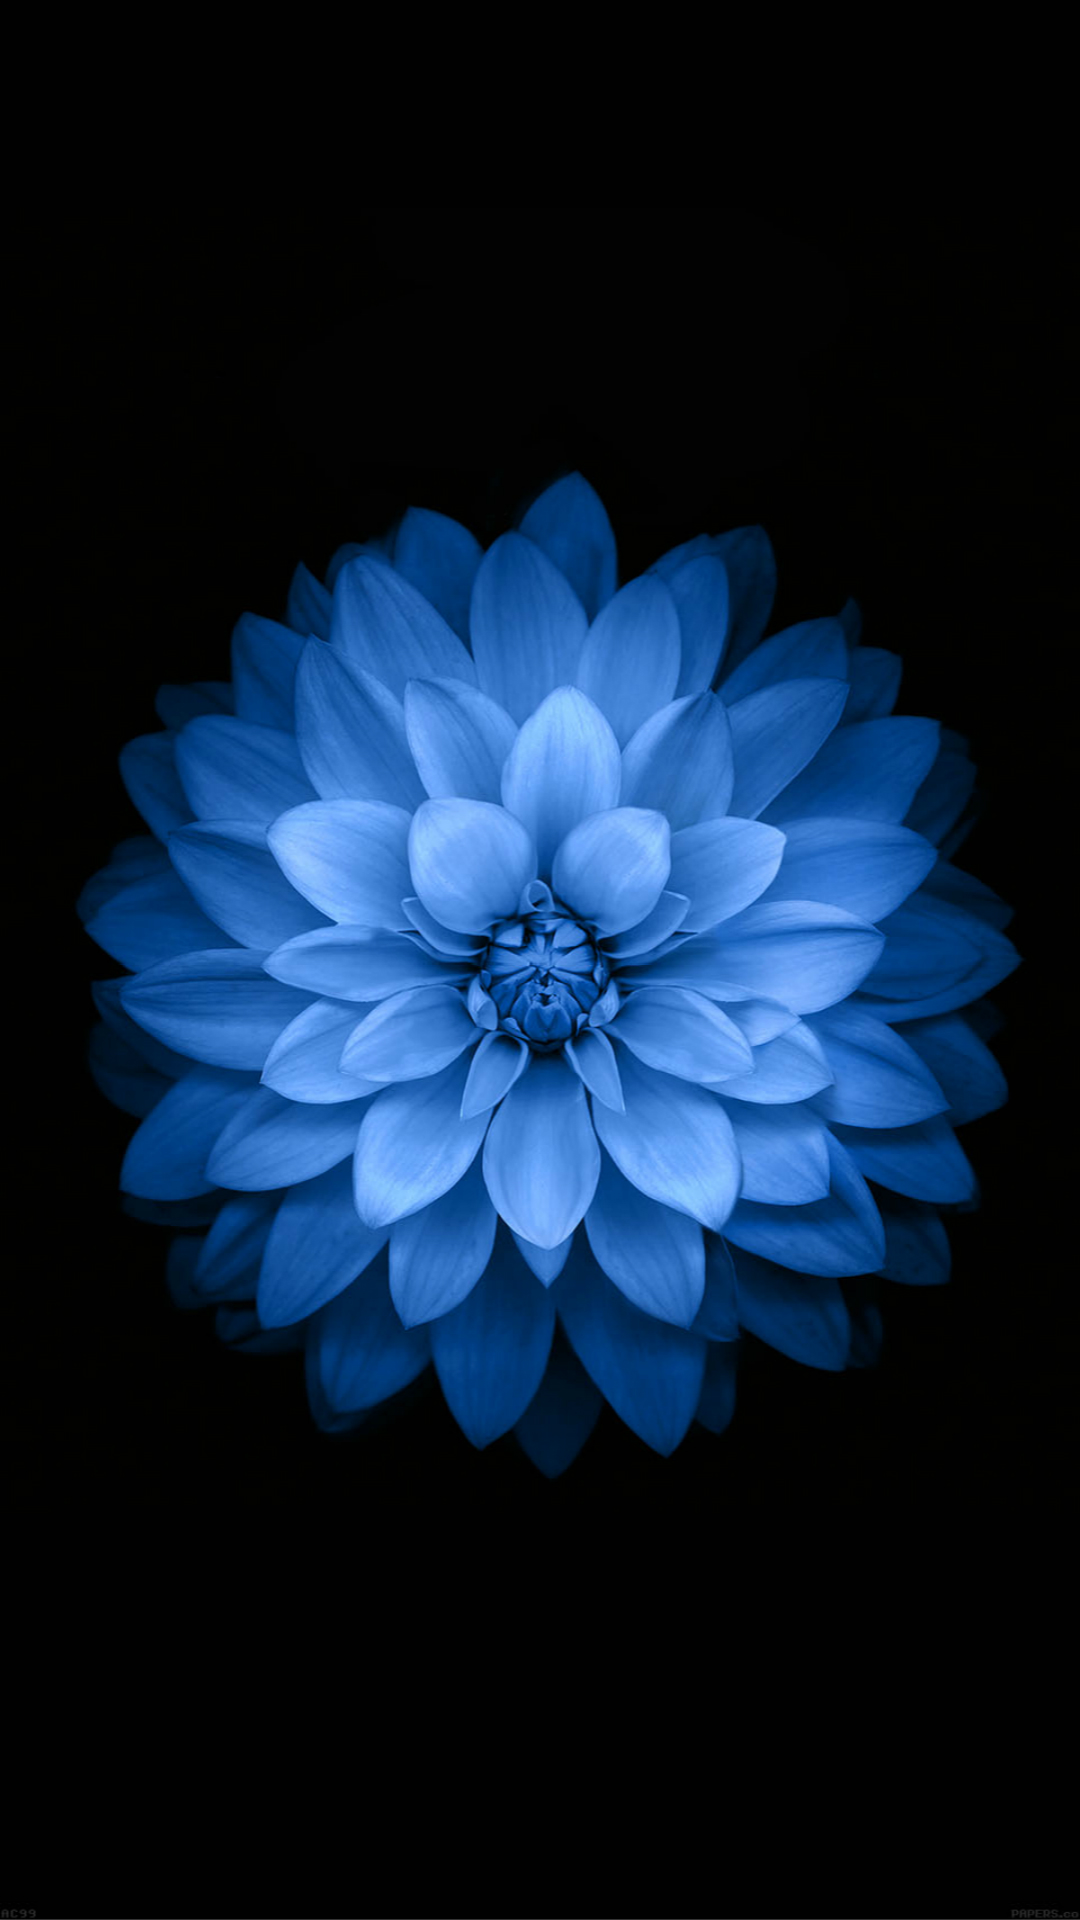 Blue Lotus iPhone 7 Wallpaper